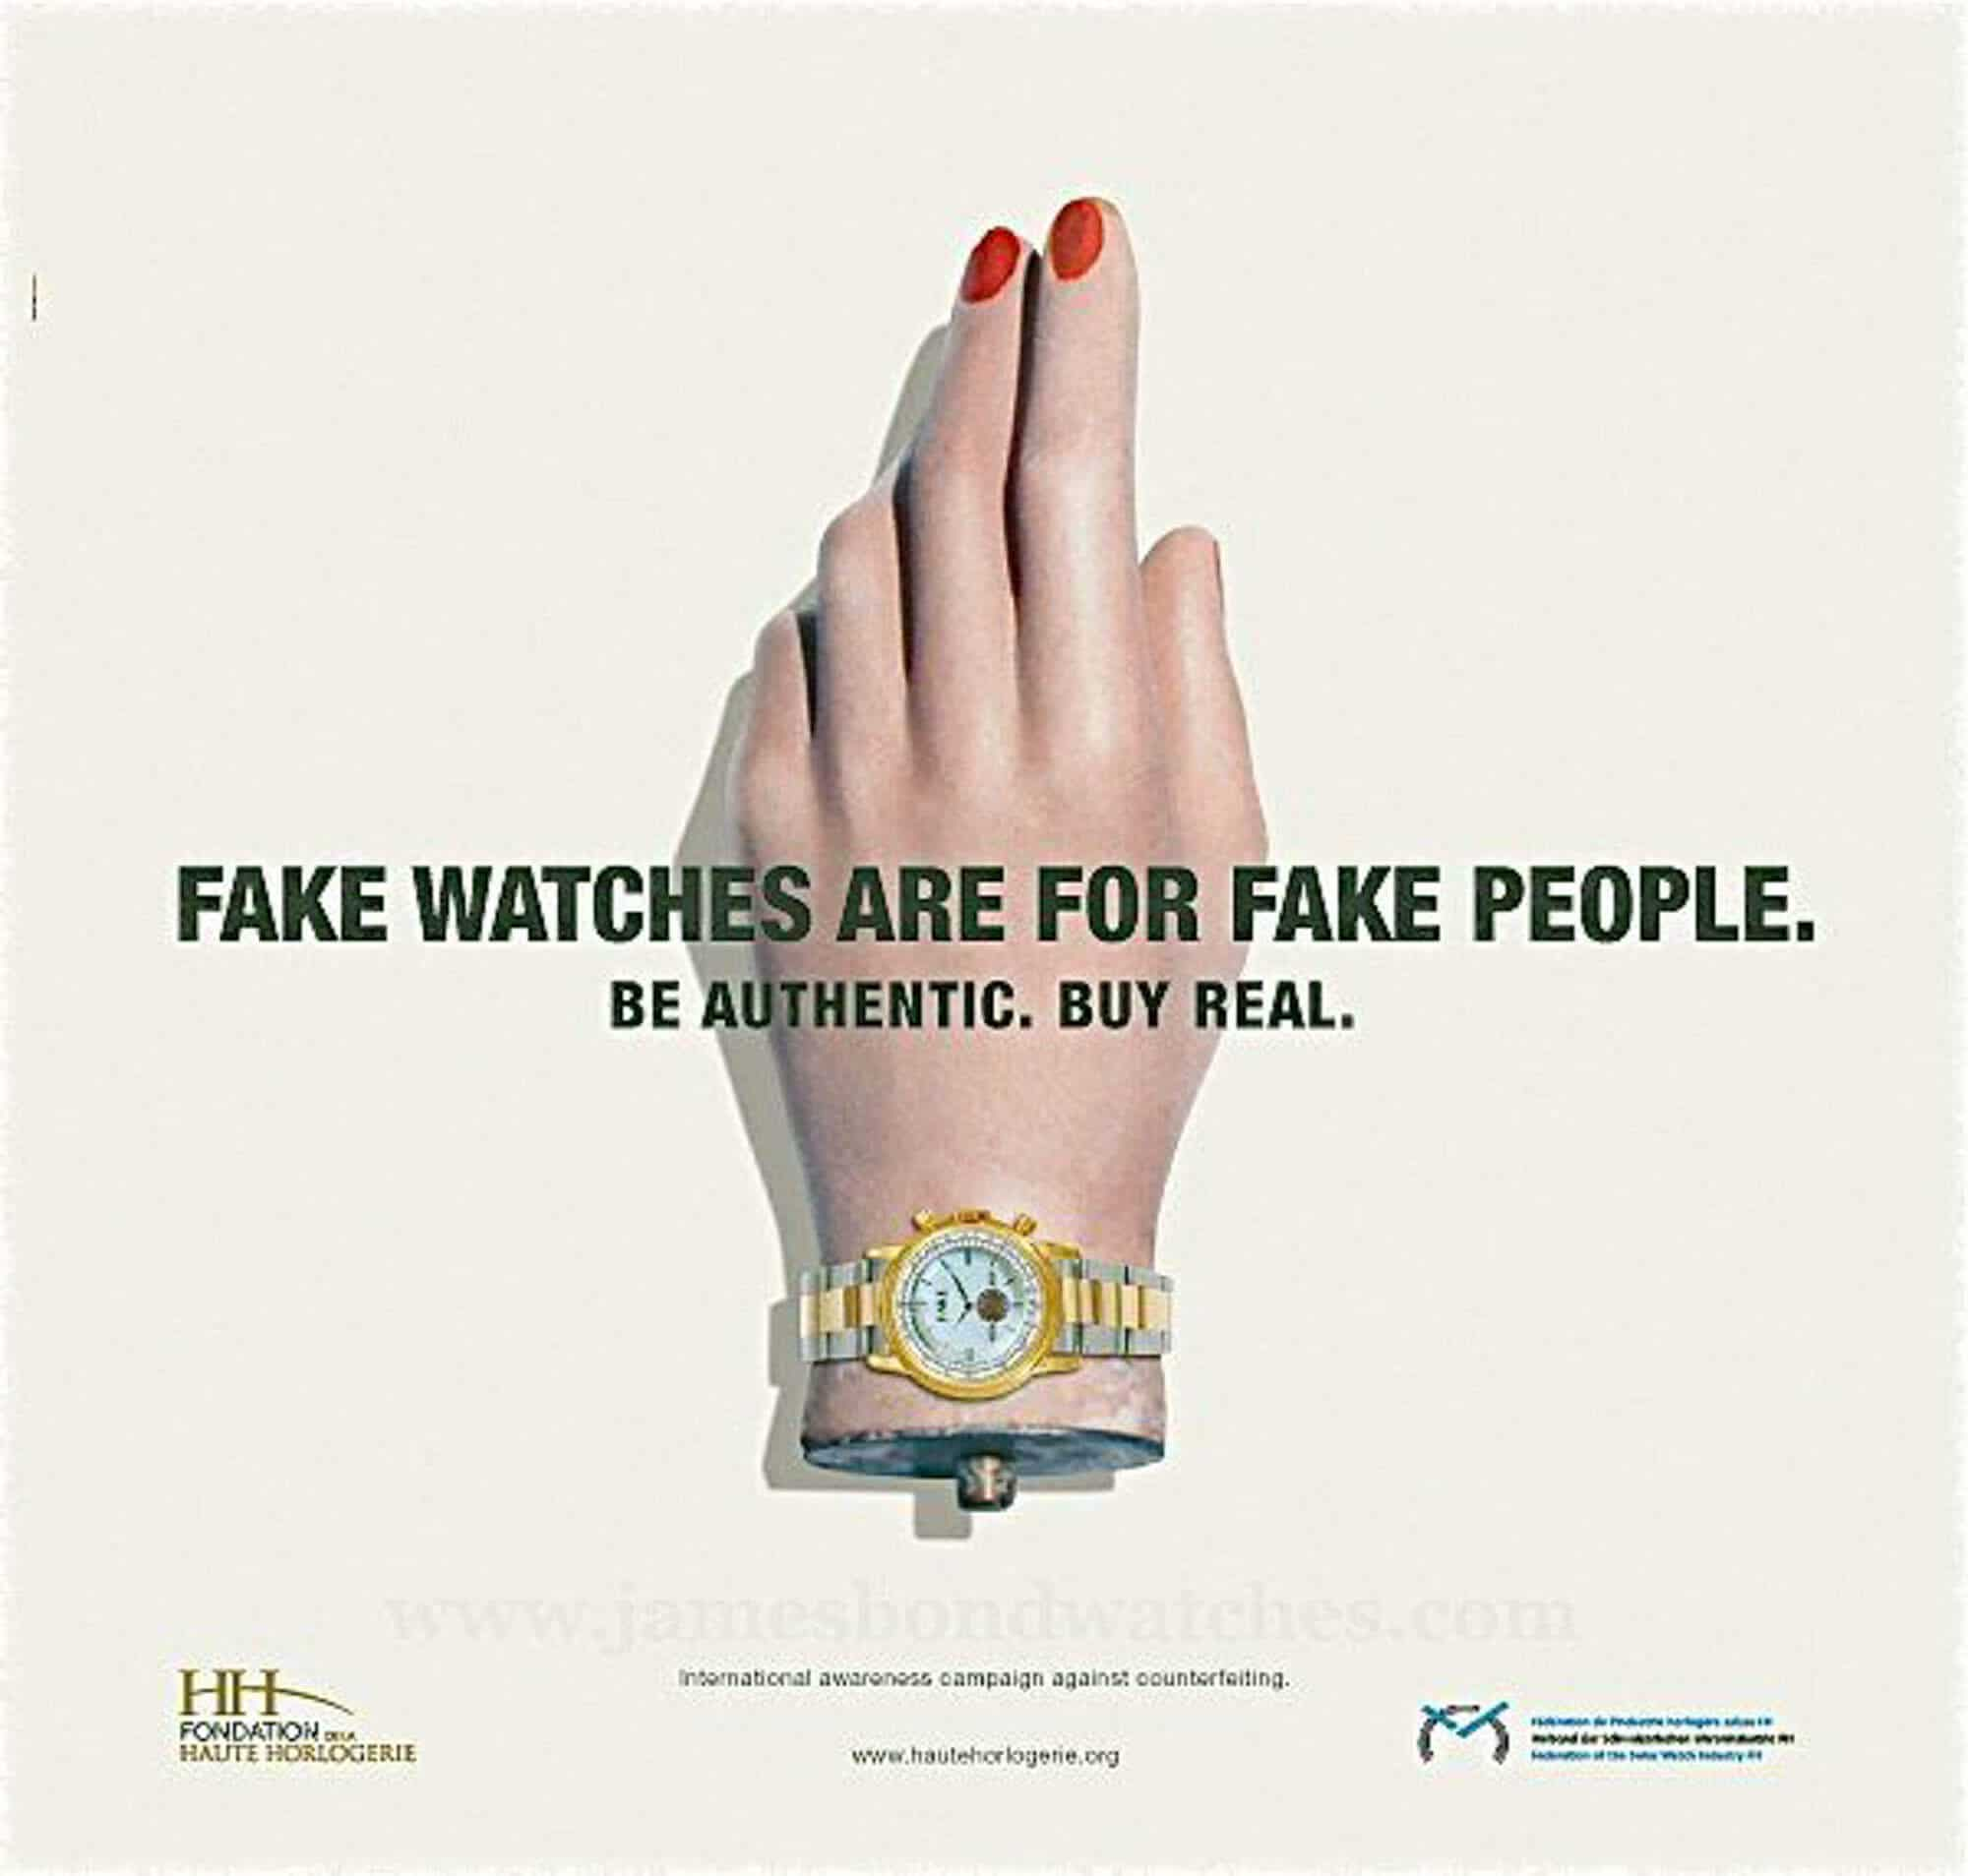 Best place to buy replica watches - 4 It Can Affect The Innocent Buyer